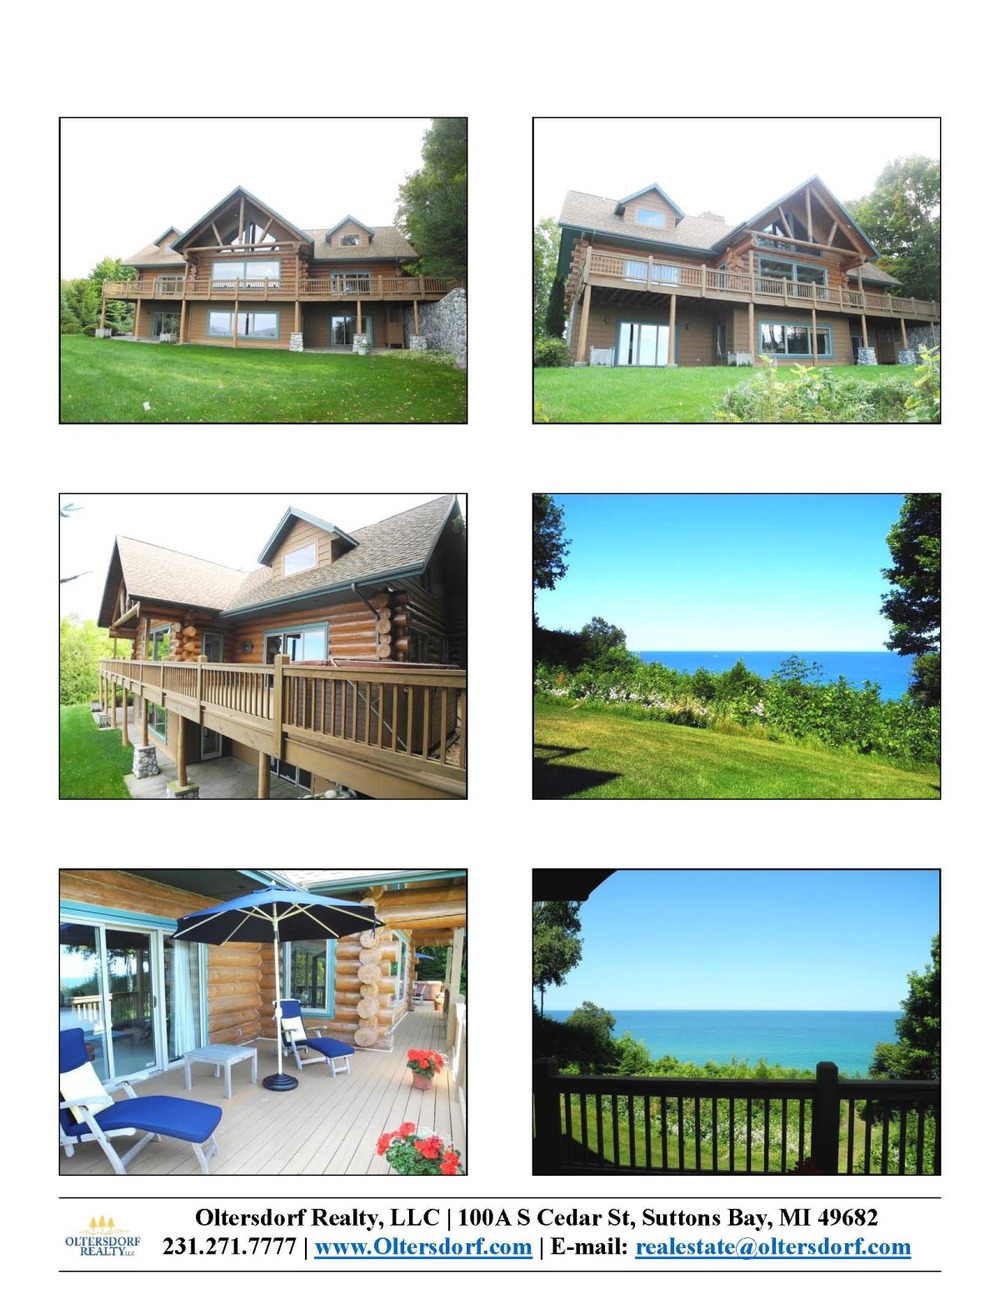 12371 n island view drive, northport, leelanau county with lake michigan water views for sale by oltersdorf realty llct_page_03.jpg